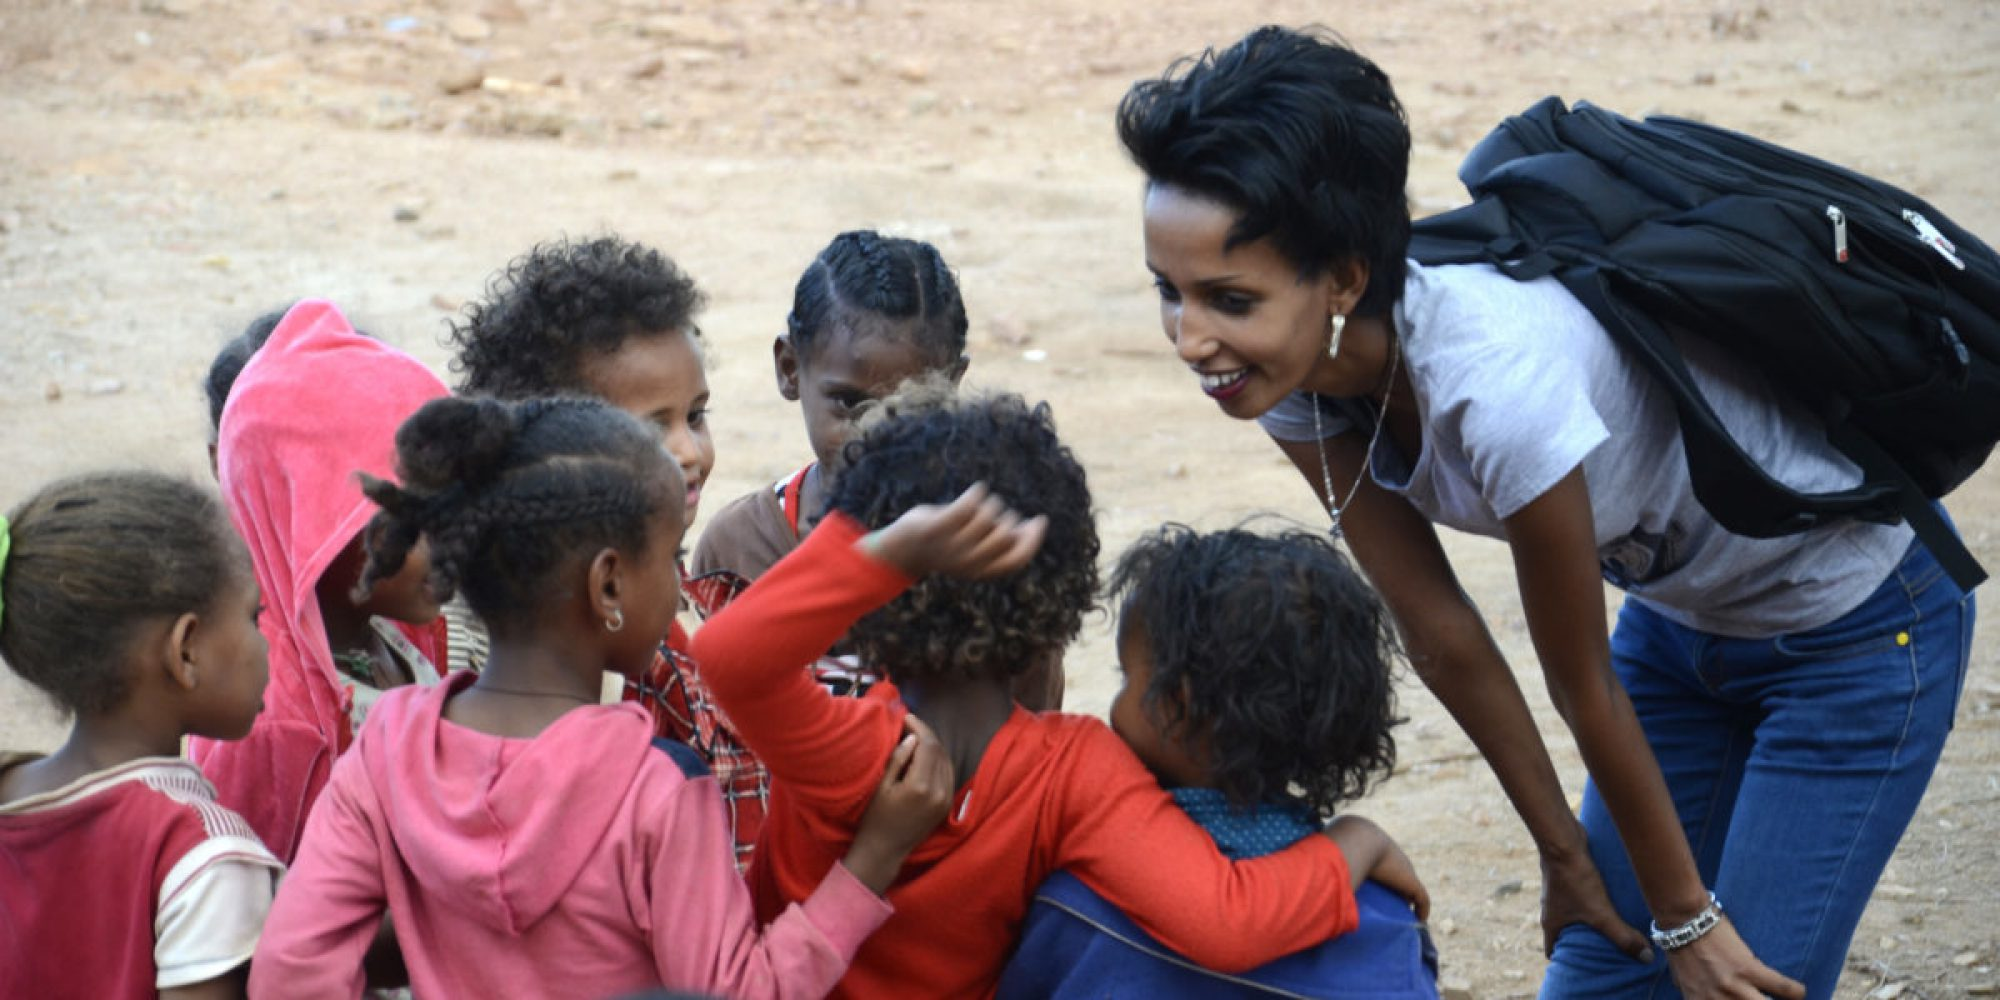 Hiwot Ali coordinates the JRS counselling department and community outreach in Mai Aini refugee camp, northern Ethiopia.